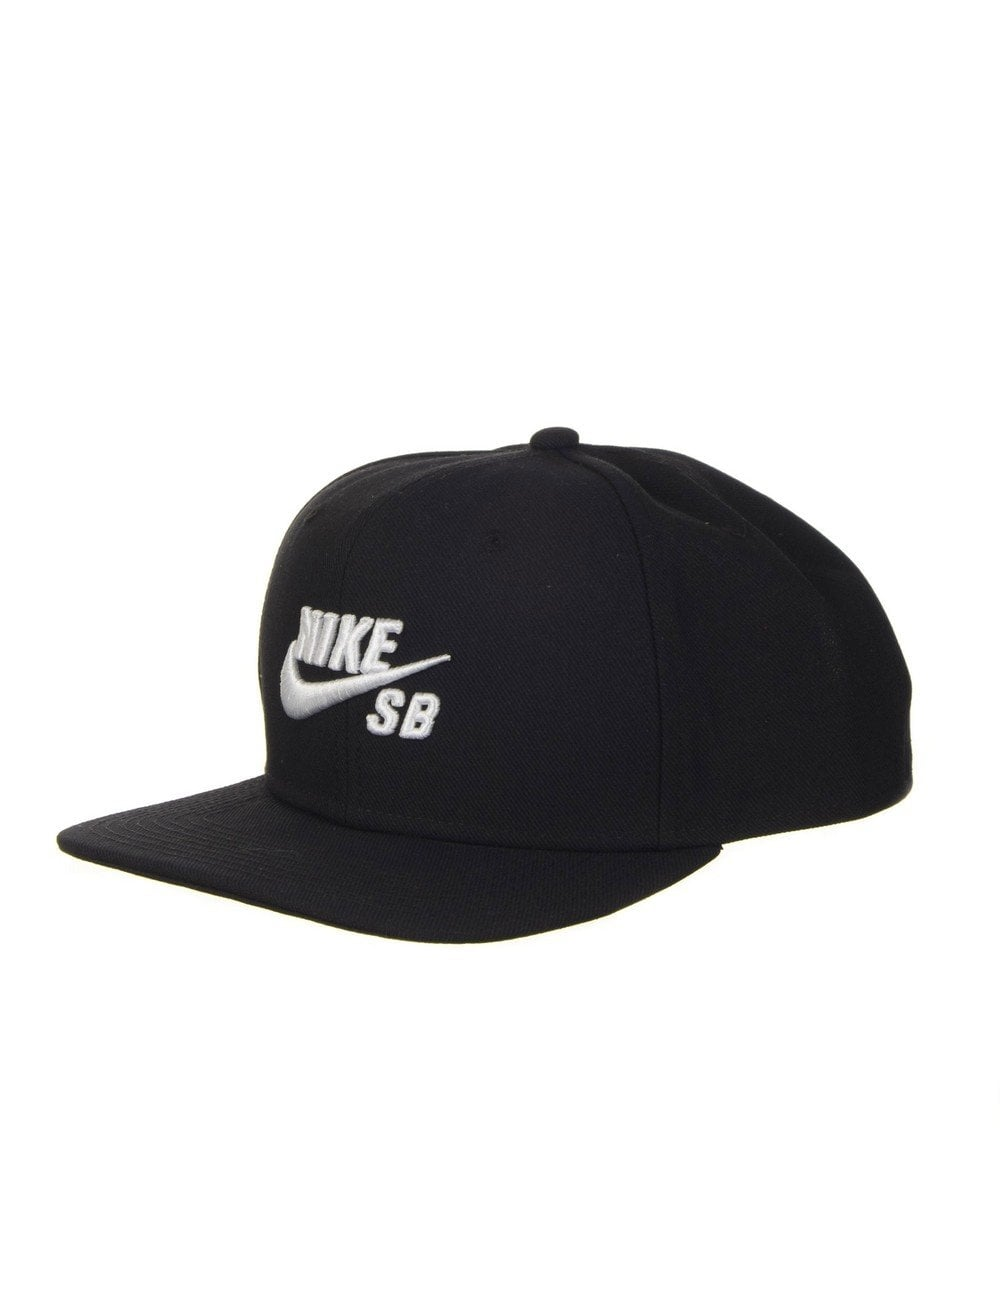 29164eaefc5 Nike SB Icon Pro Snapback Hat - Black White - Accessories from Fat ...